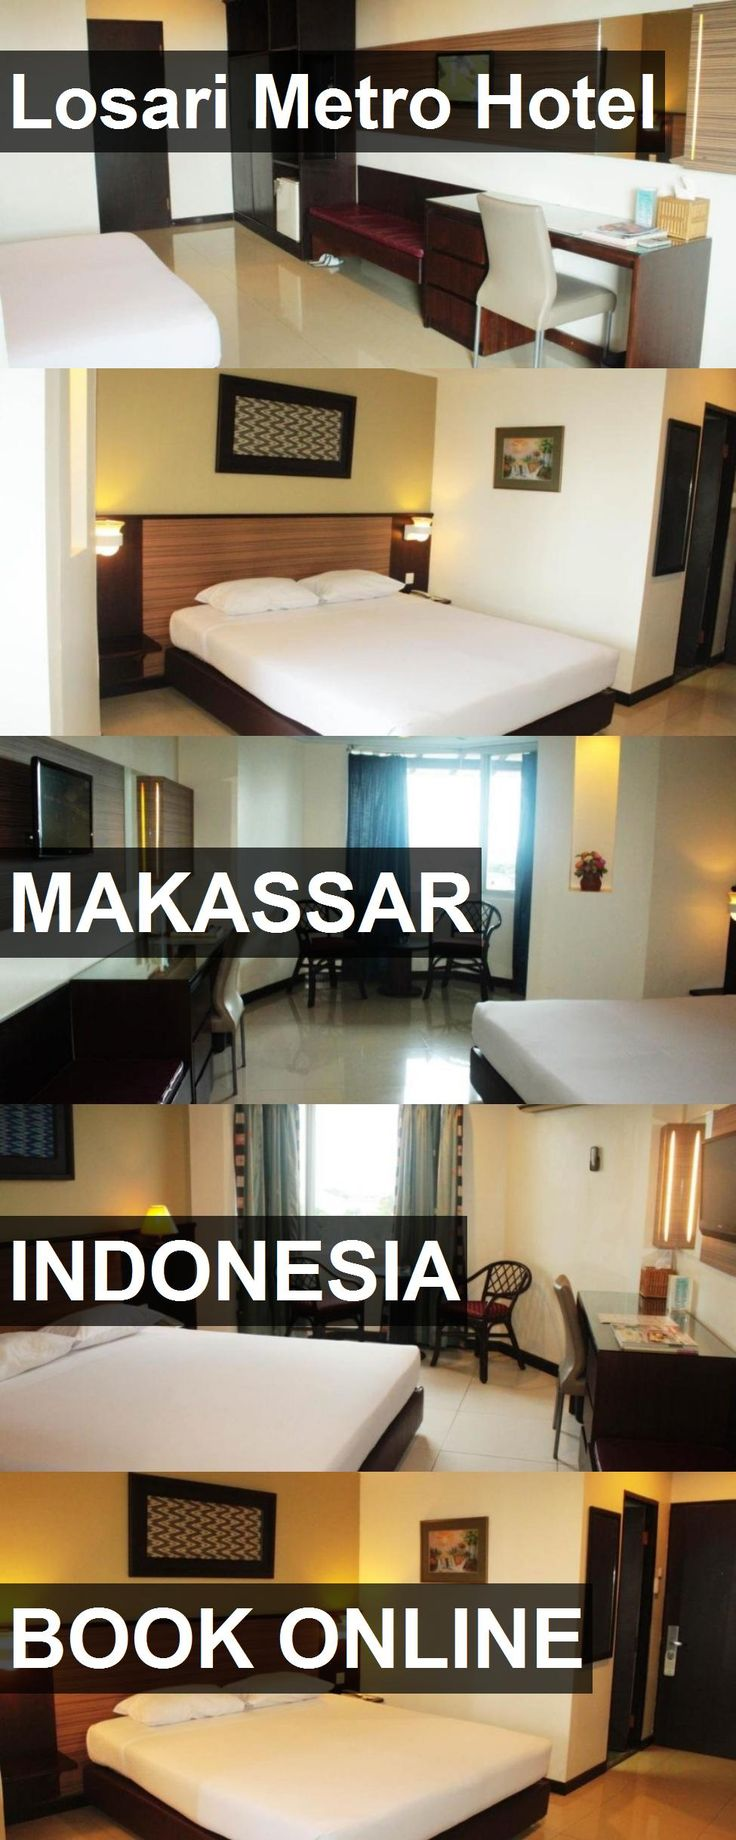 Hotel Losari Metro Hotel in Makassar, Indonesia. For more information, photos, reviews and best prices please follow the link. #Indonesia #Makassar #LosariMetroHotel #hotel #travel #vacation